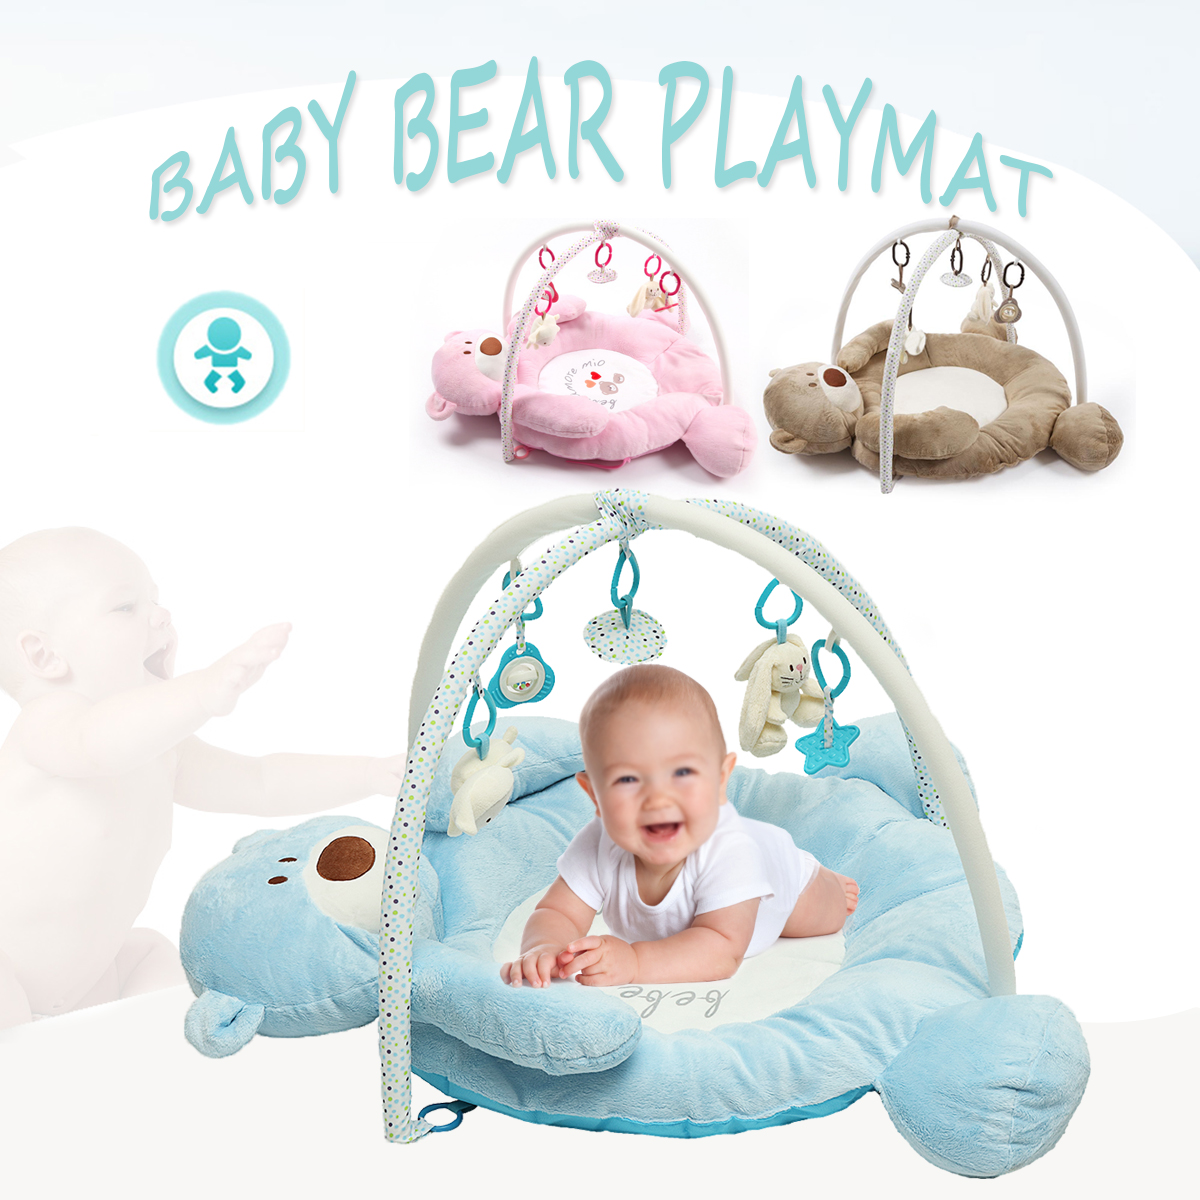 Foldable Musical Baby Bear Playmat Children Soft Gym Activity Floor Mat Toddlers Baby Play Bat